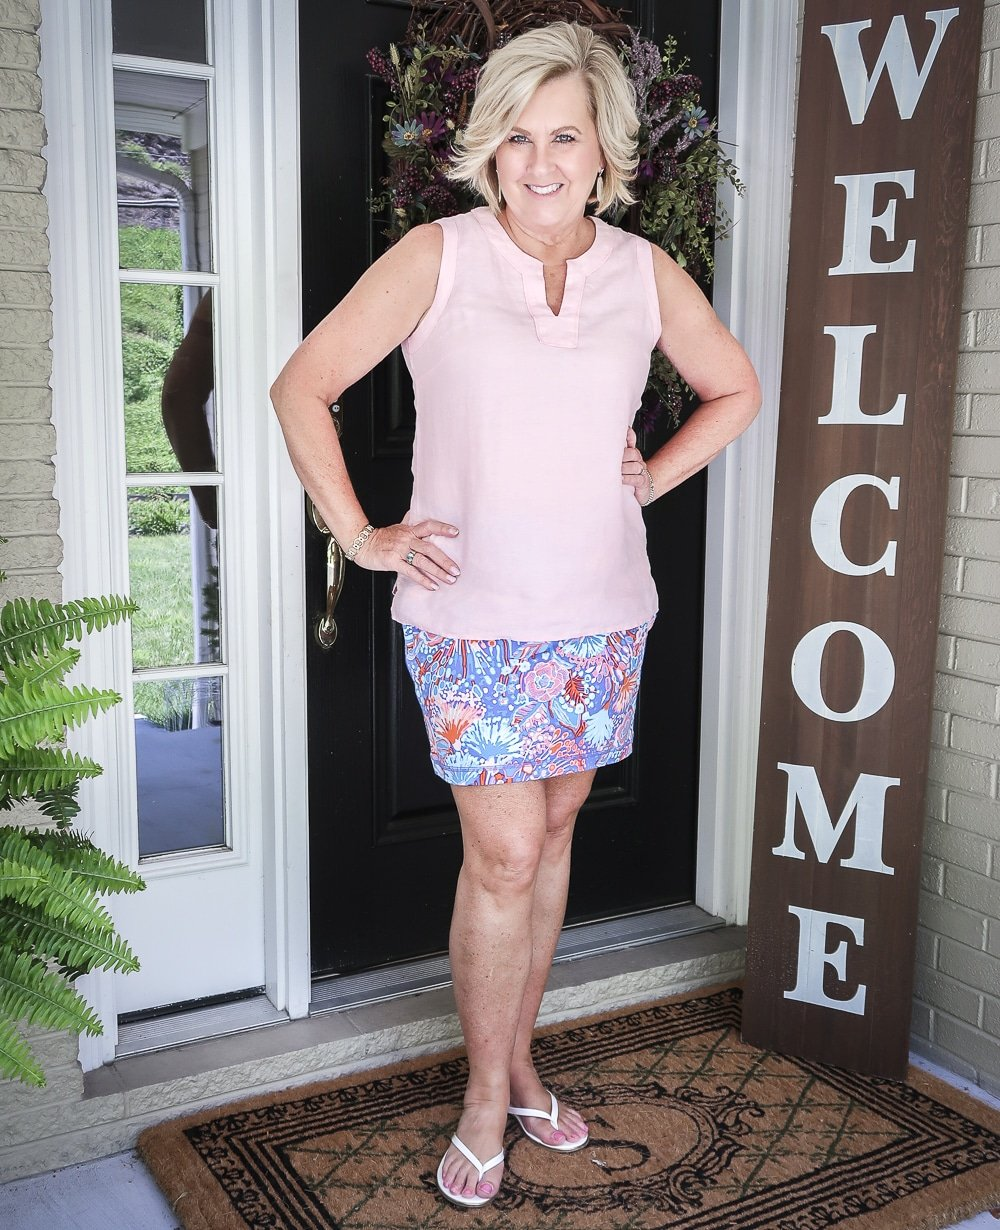 Fashion Blogger 50 Is Not Old is wearing a pale linen v neck top and a colorful skort